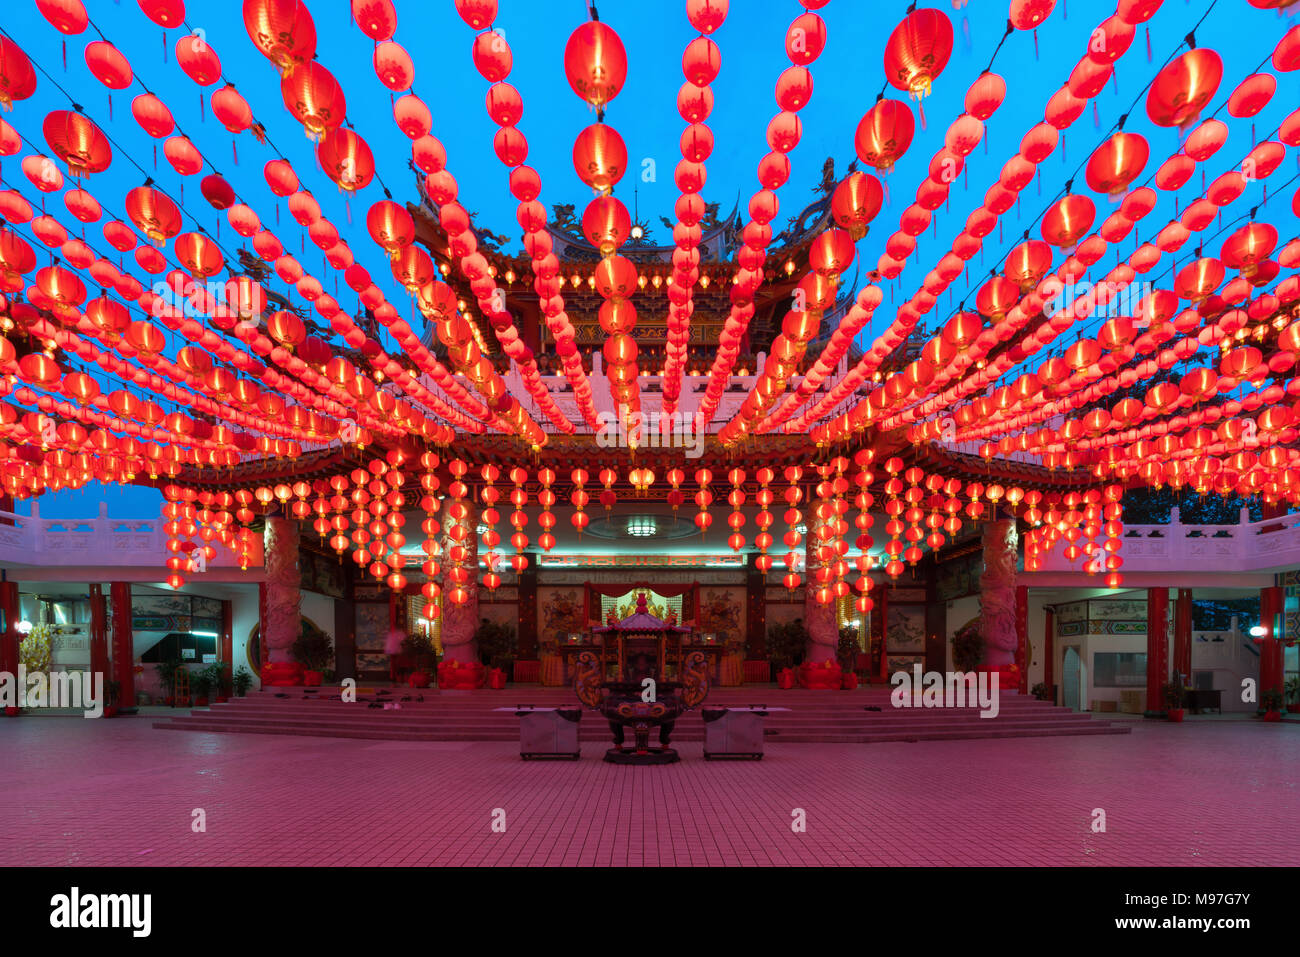 Traditionelle Chinesische Laternen Anzeige in Thean Hou Tempel beleuchtet für Chinese New Year Festival, Kuala Lumpur, Malaysia. Stockfoto